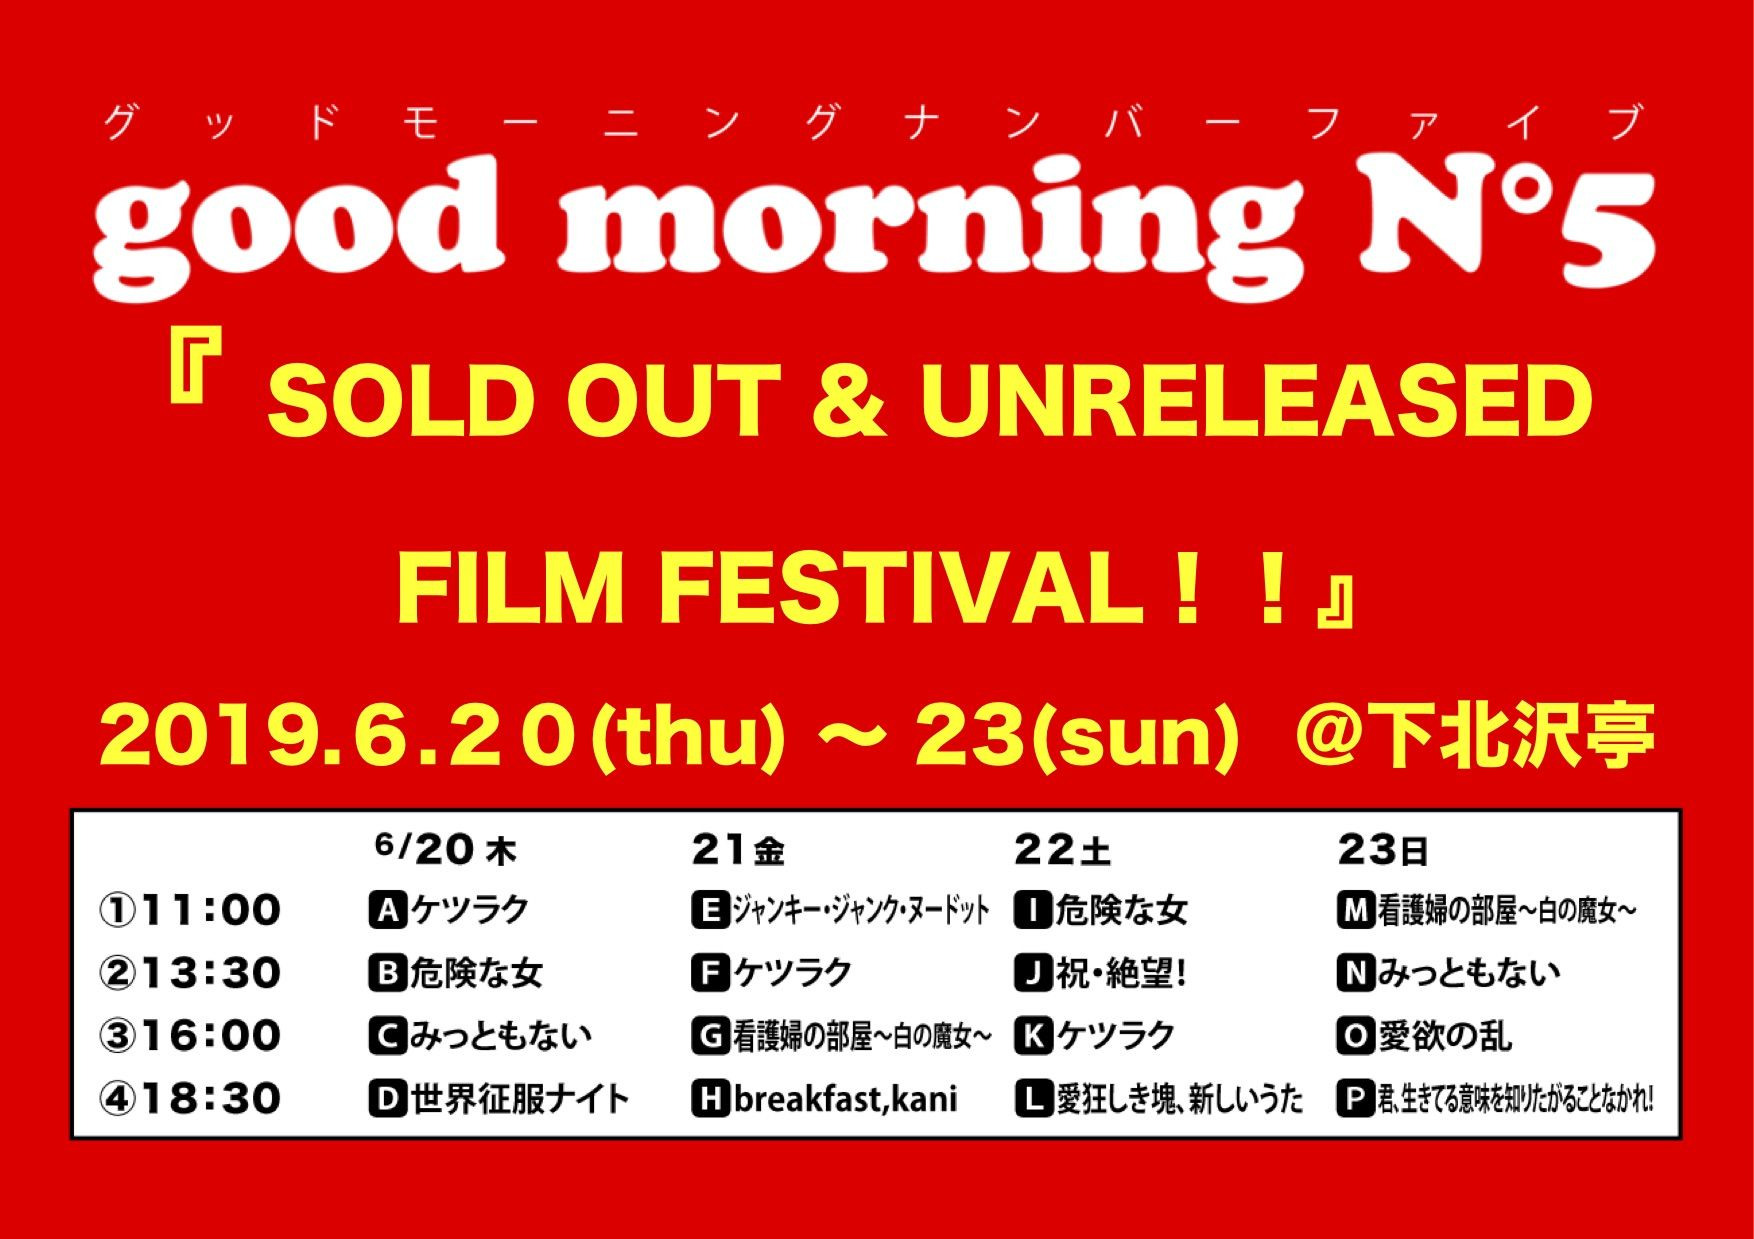 good morning N°5 SOLDOUT & UNRELEASED FILMFESTIVAL